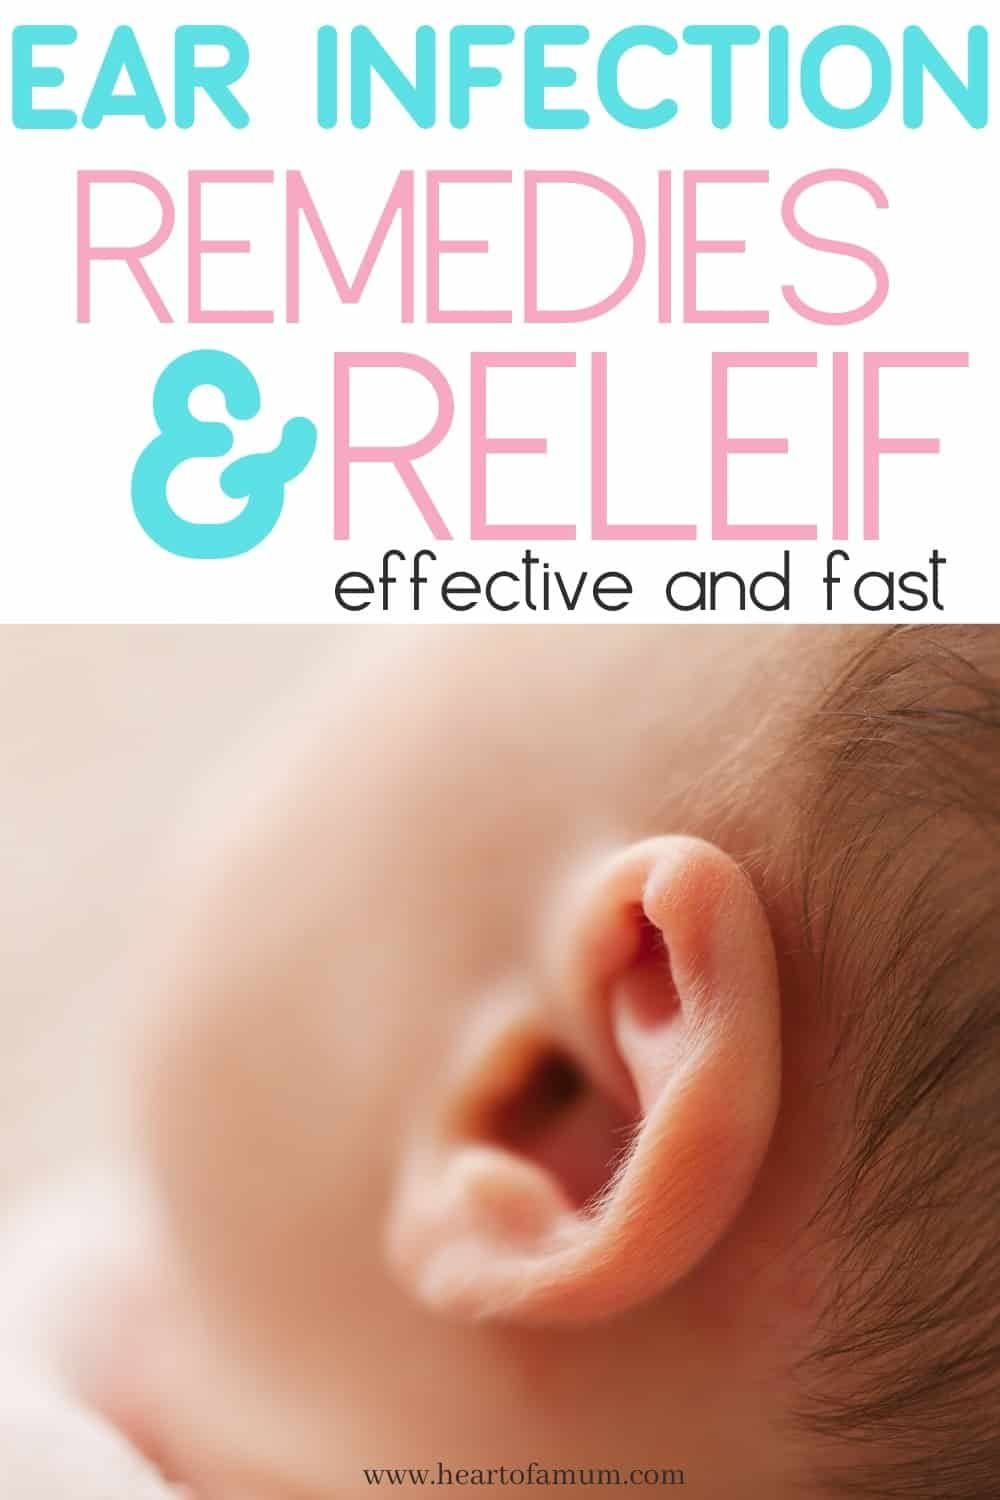 9 Ear Infection Remedies You Need To Know When You Have Children Ear Infection Remedy Baby Ear Infection Remedies Natural Ear Infection Remedy